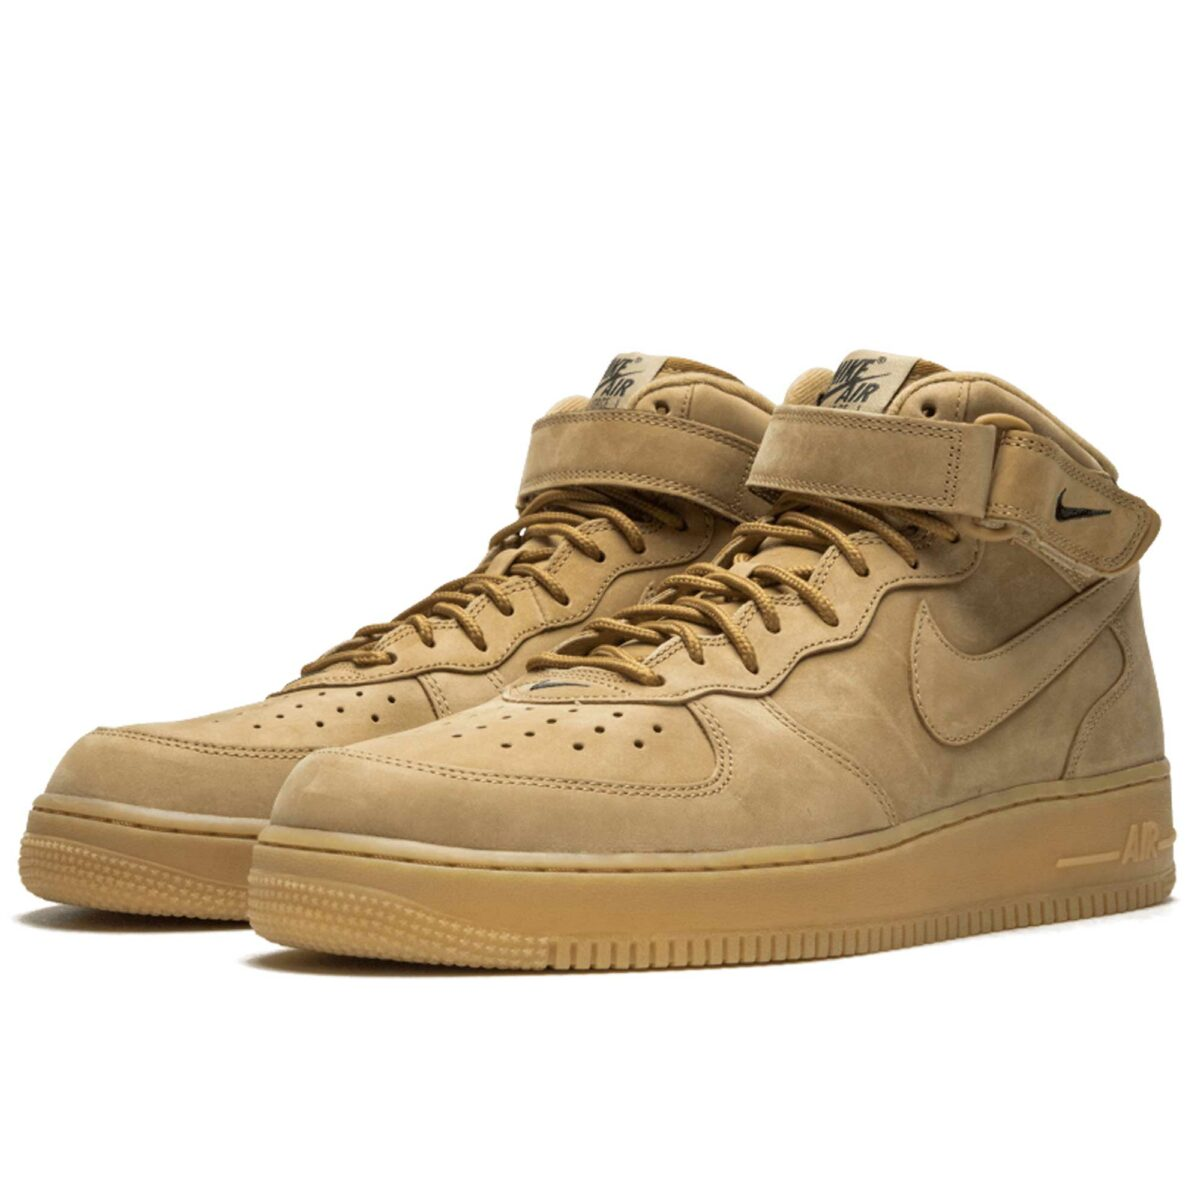 nike air force 1 mid flax 715889_200 купить